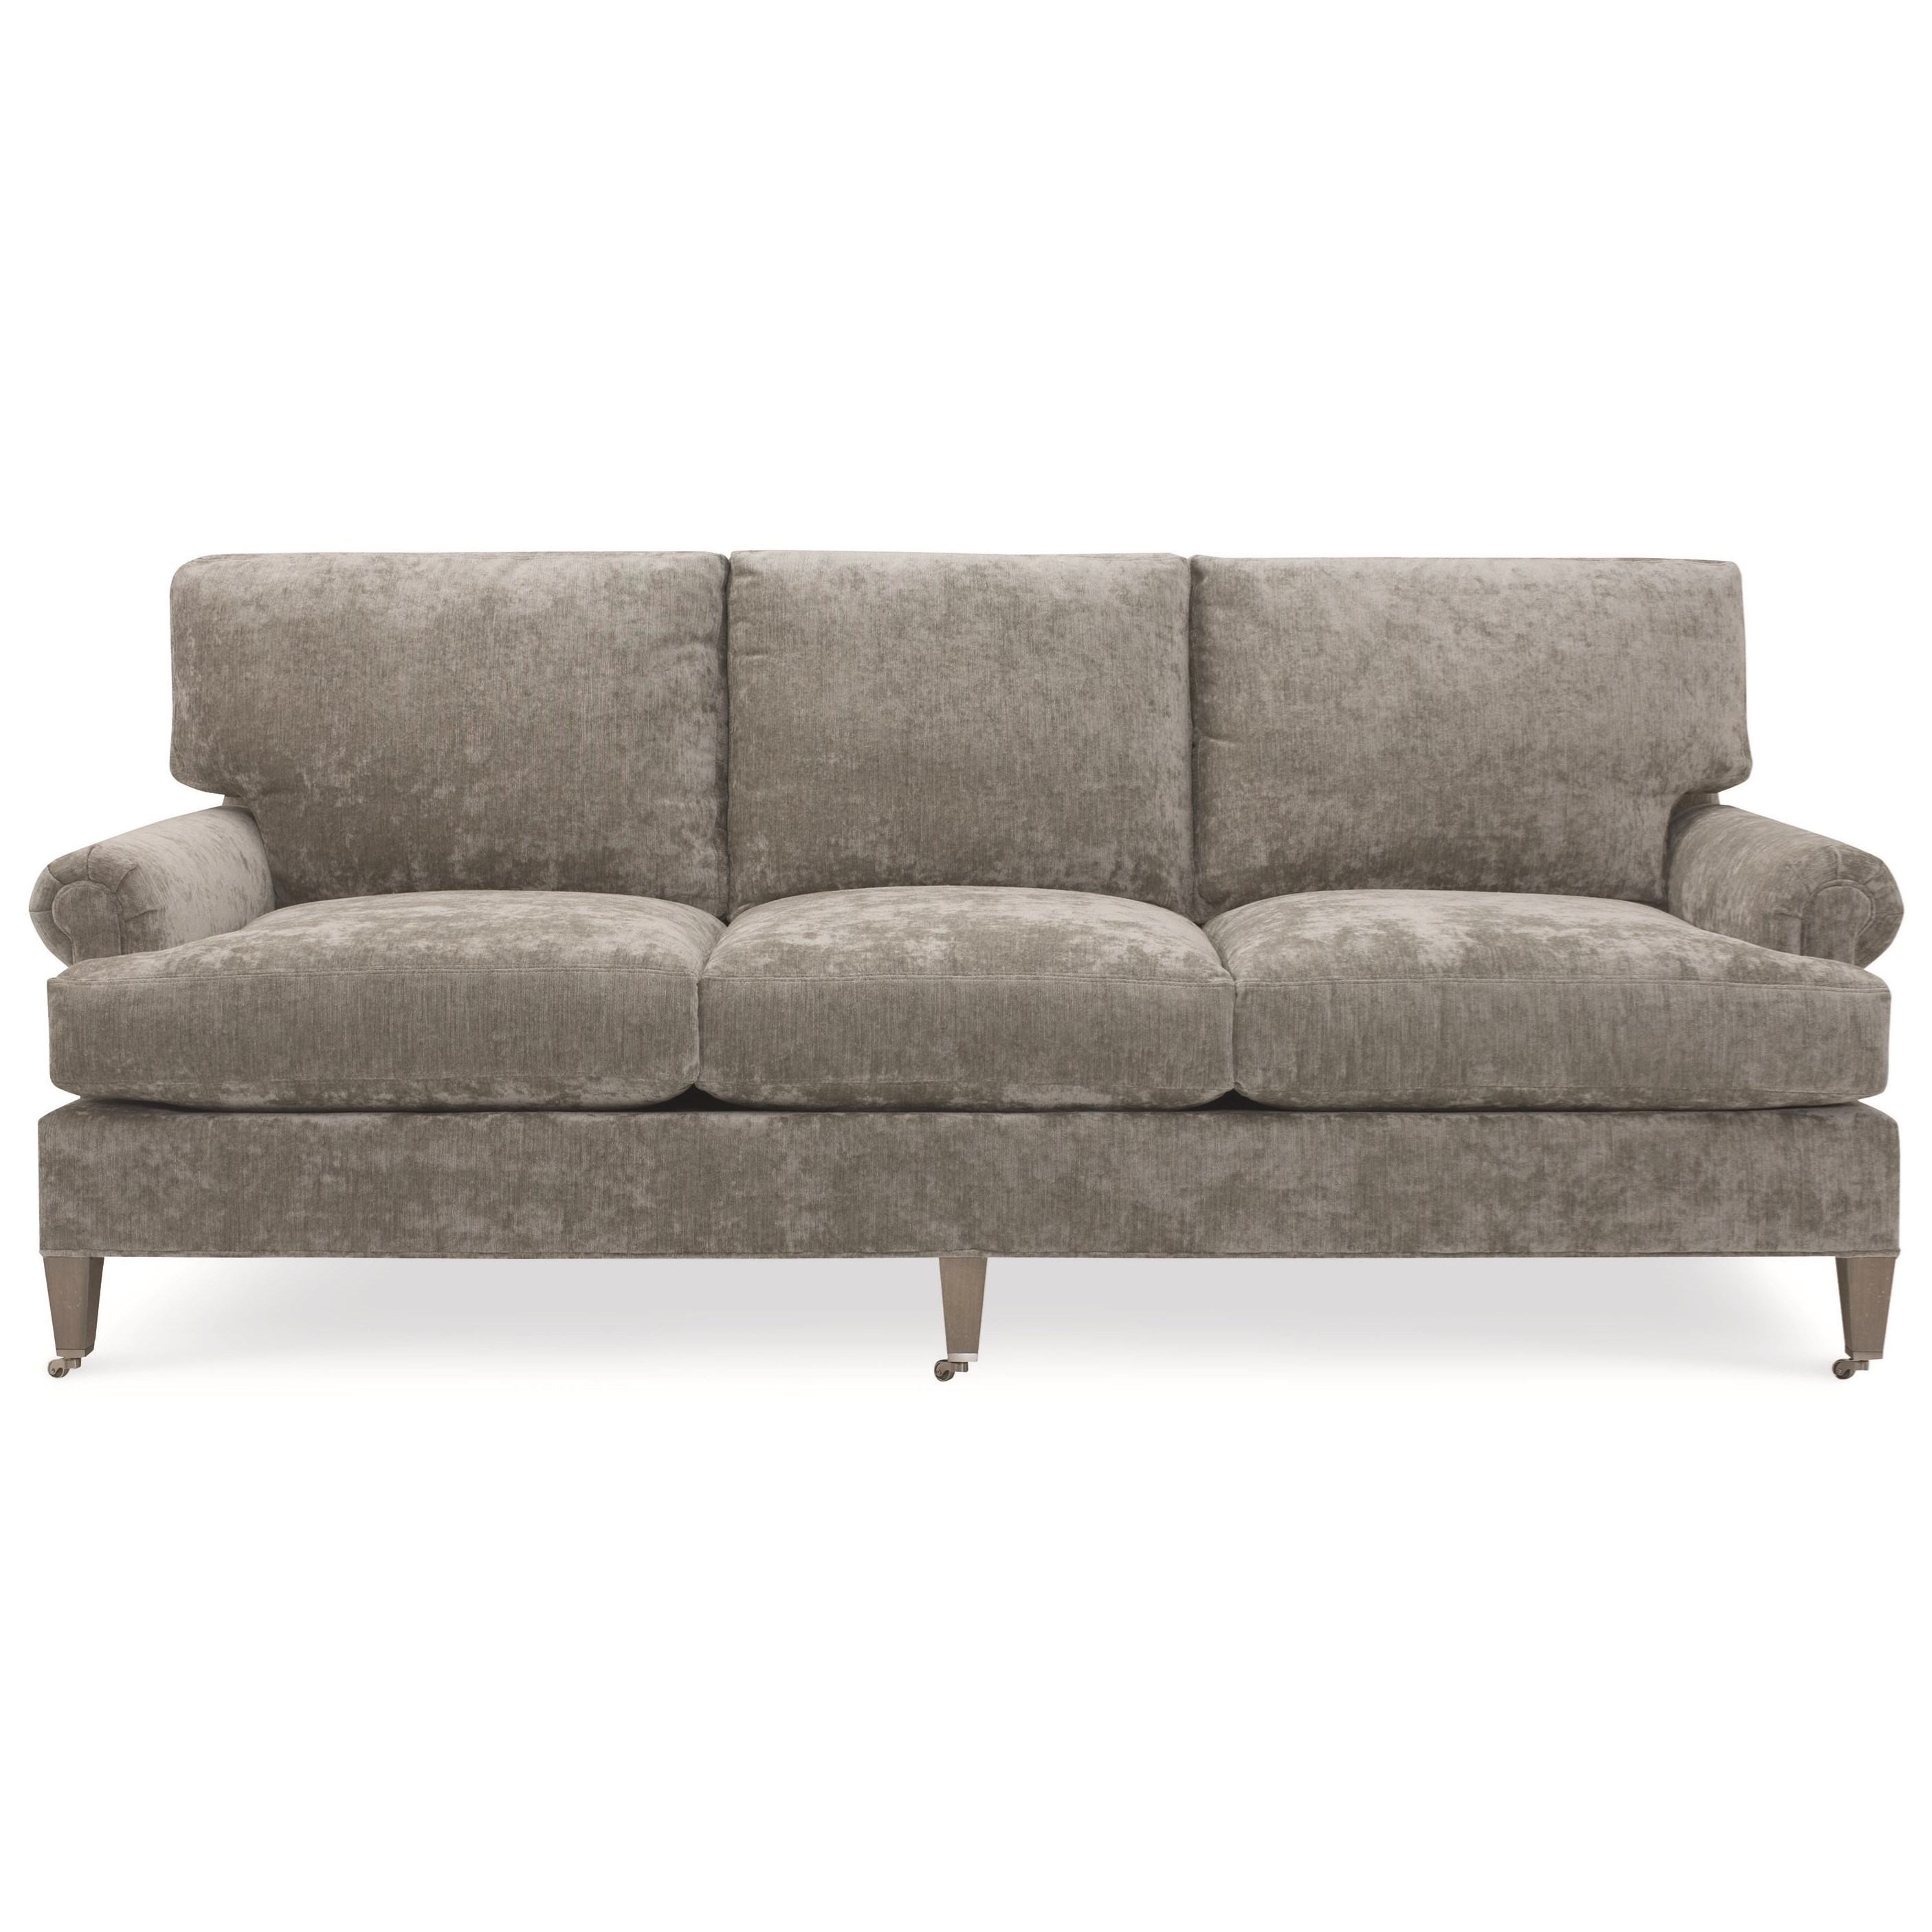 custom sectional sofa design ventura american signature customizable 13 arkle org thesofa